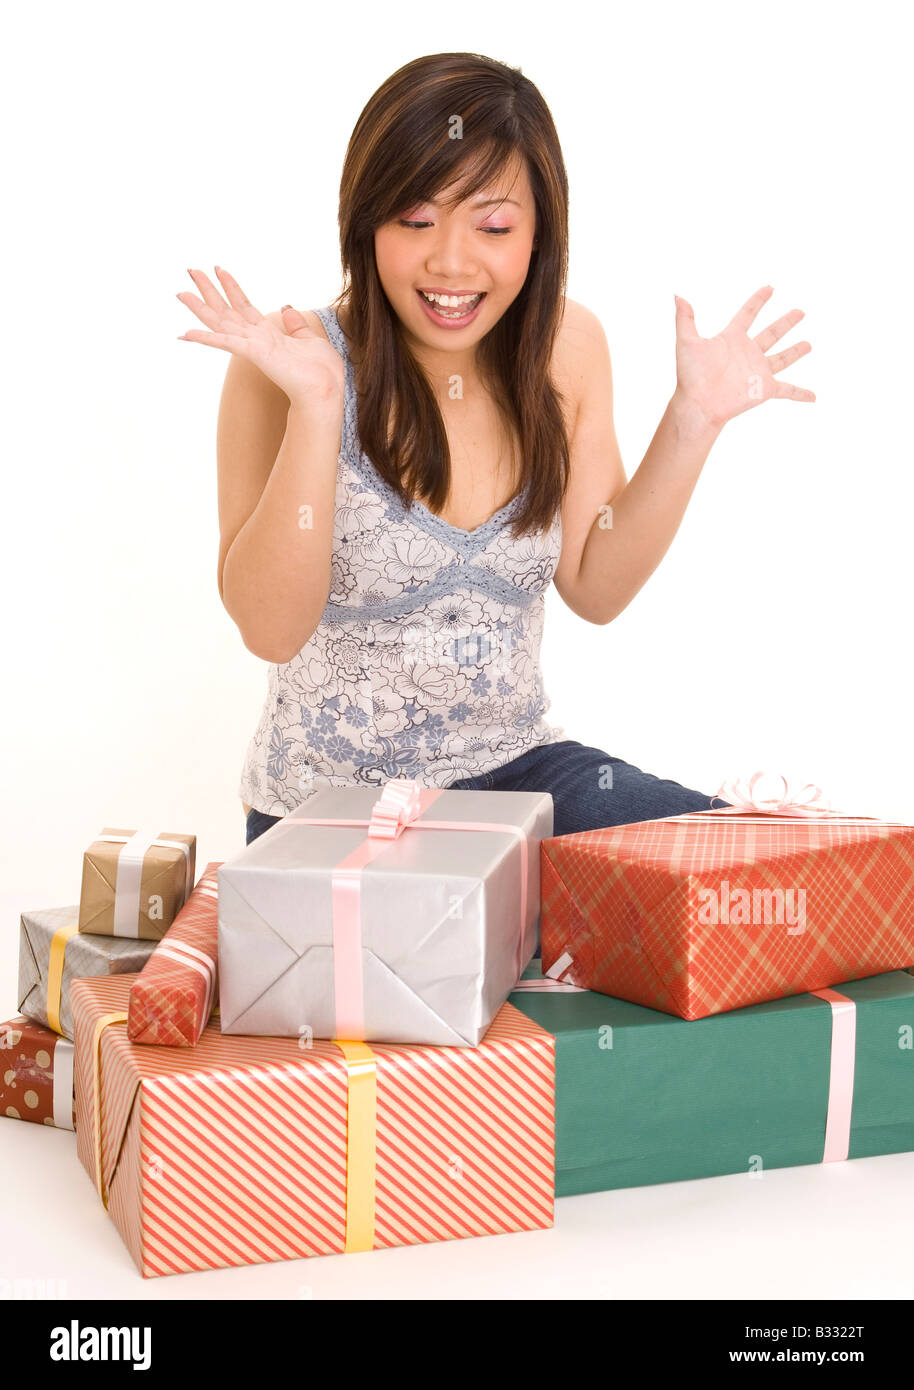 A young asian woman is excited as she has a huge pile of gifts to open